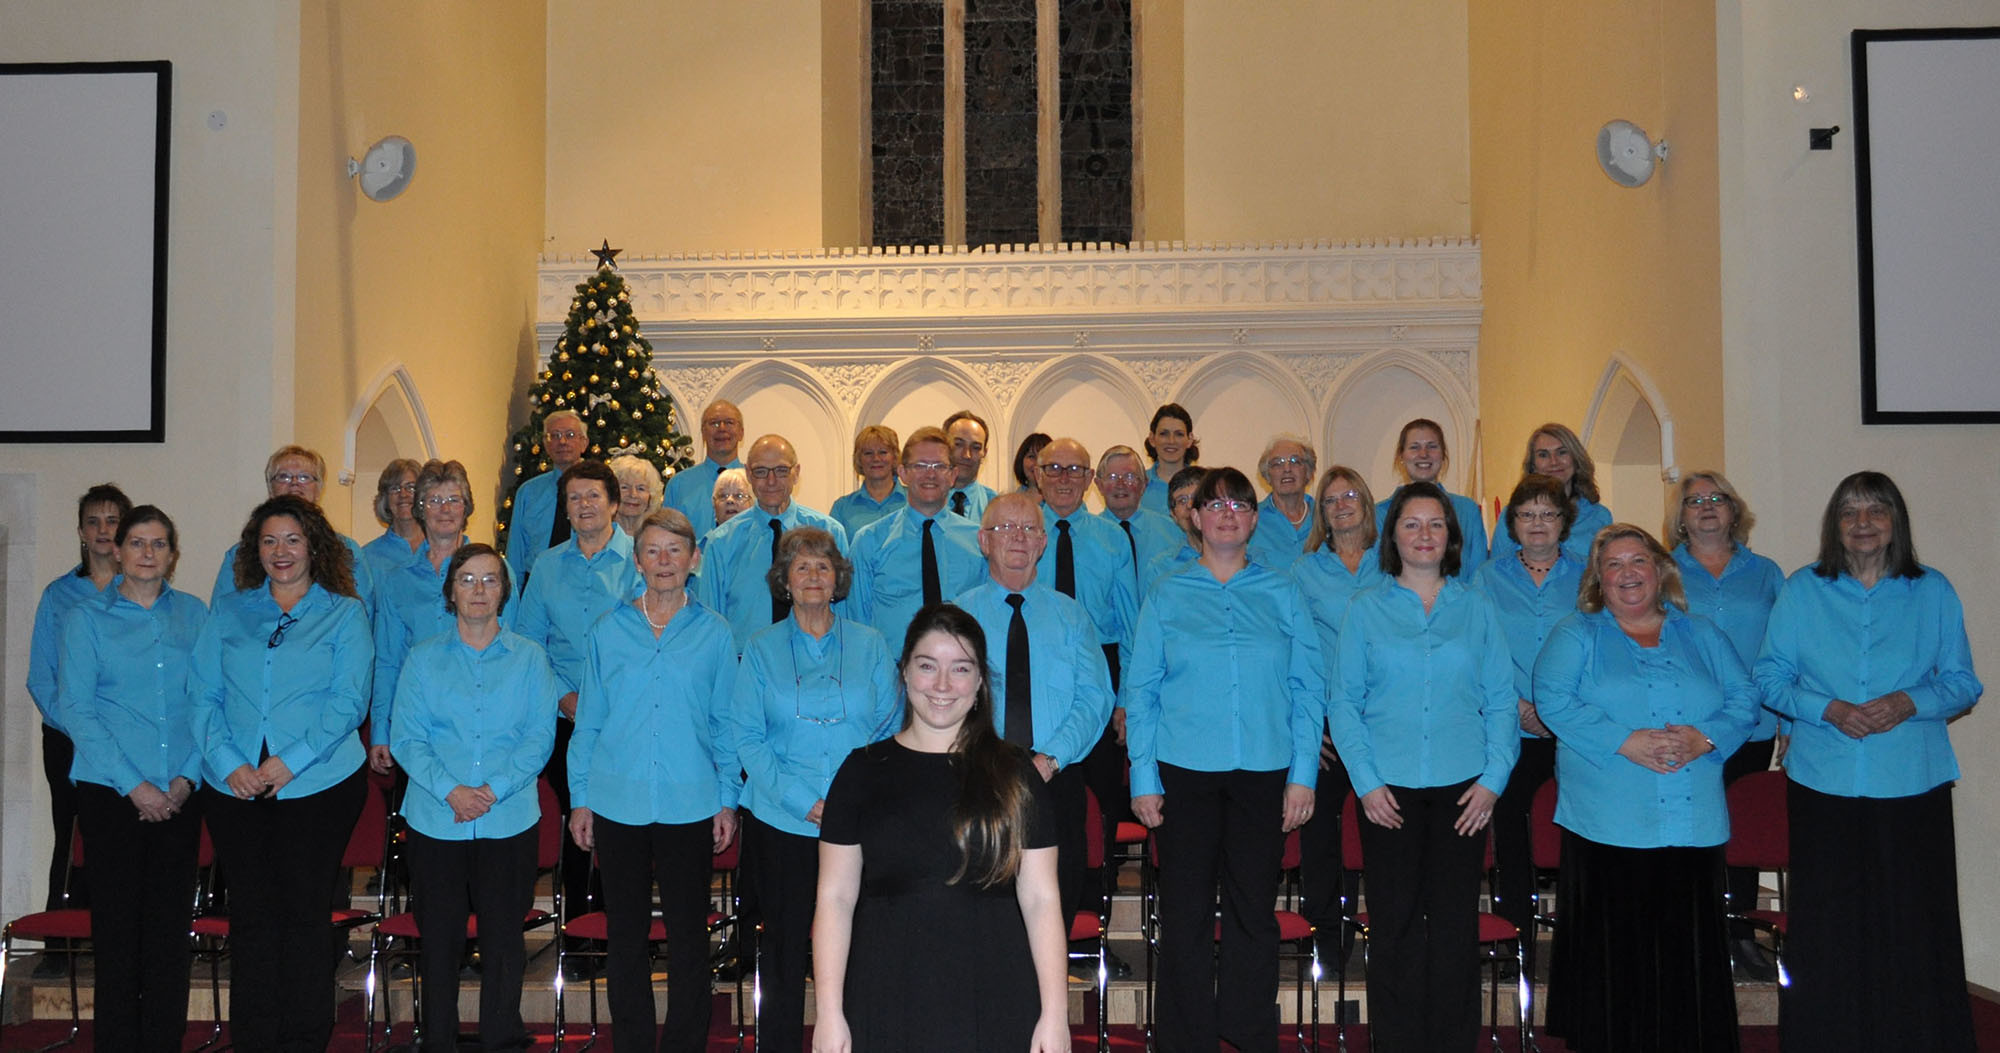 Clevedon Choral Society